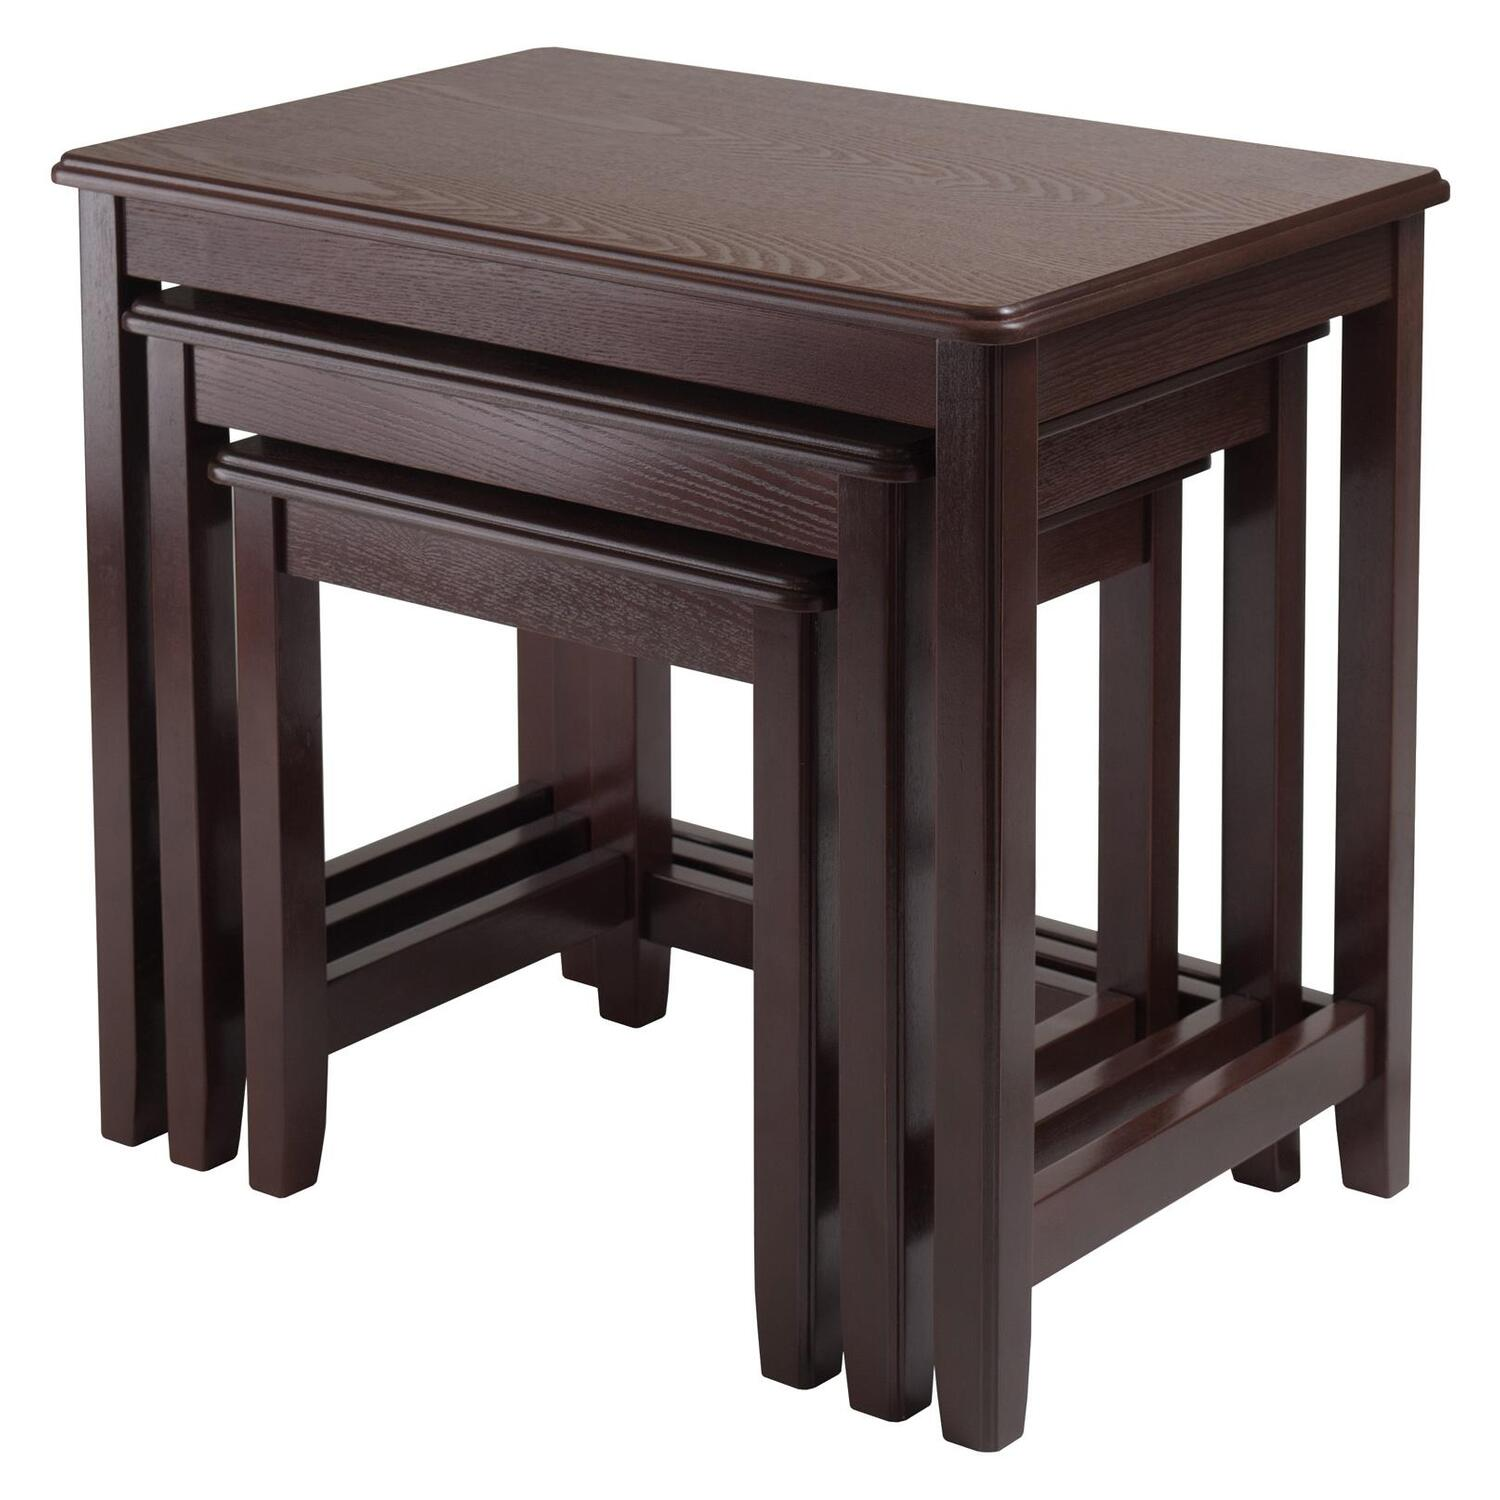 Winsome Trina 3pc Nesting Table By OJ Commerce 40322 14899